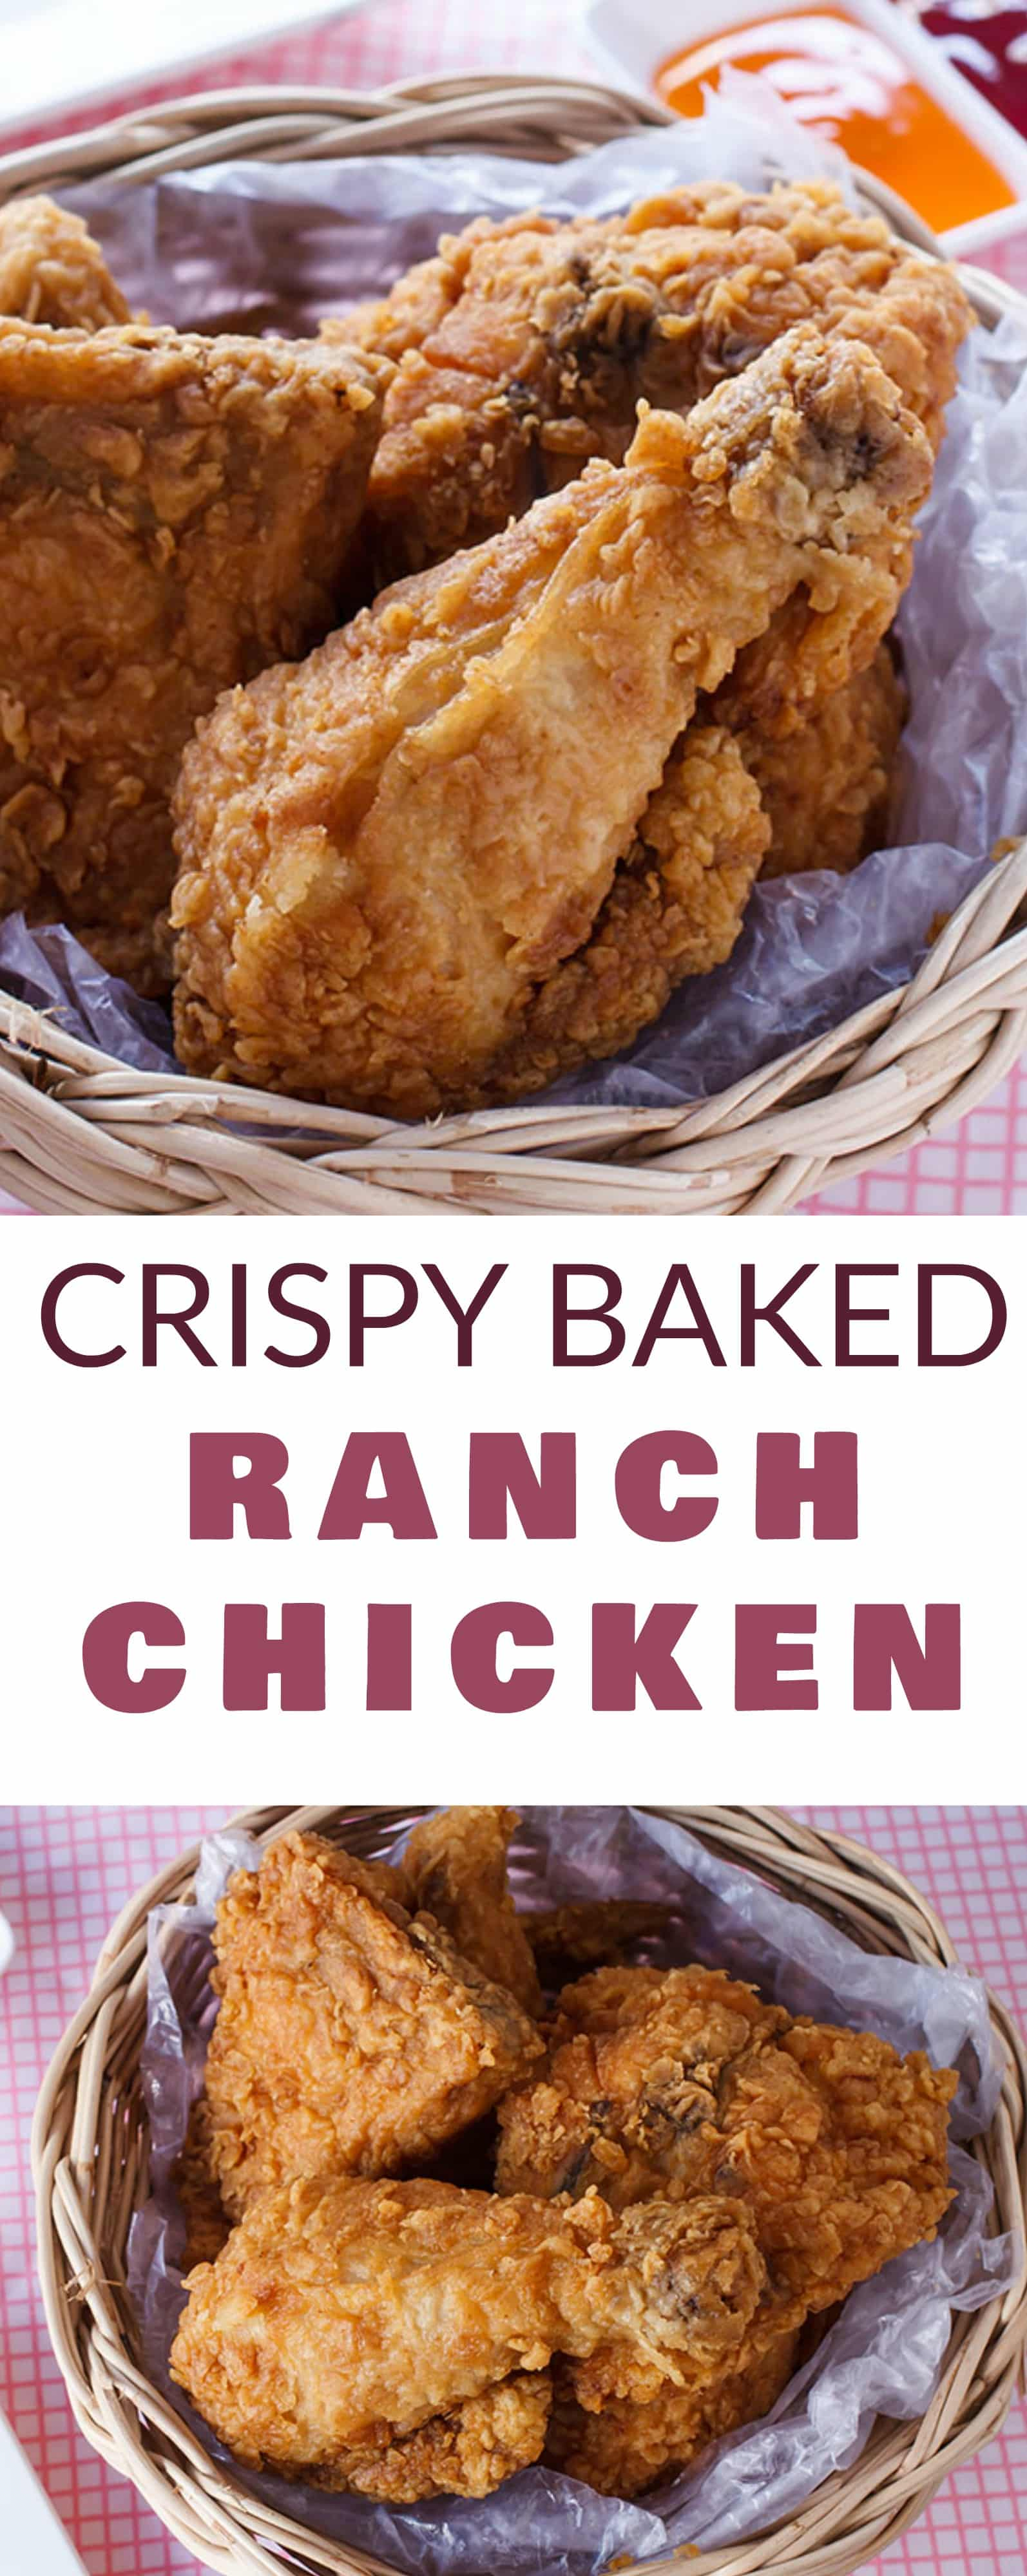 Fried Chicken Breast Recipes Easy Oven Baked